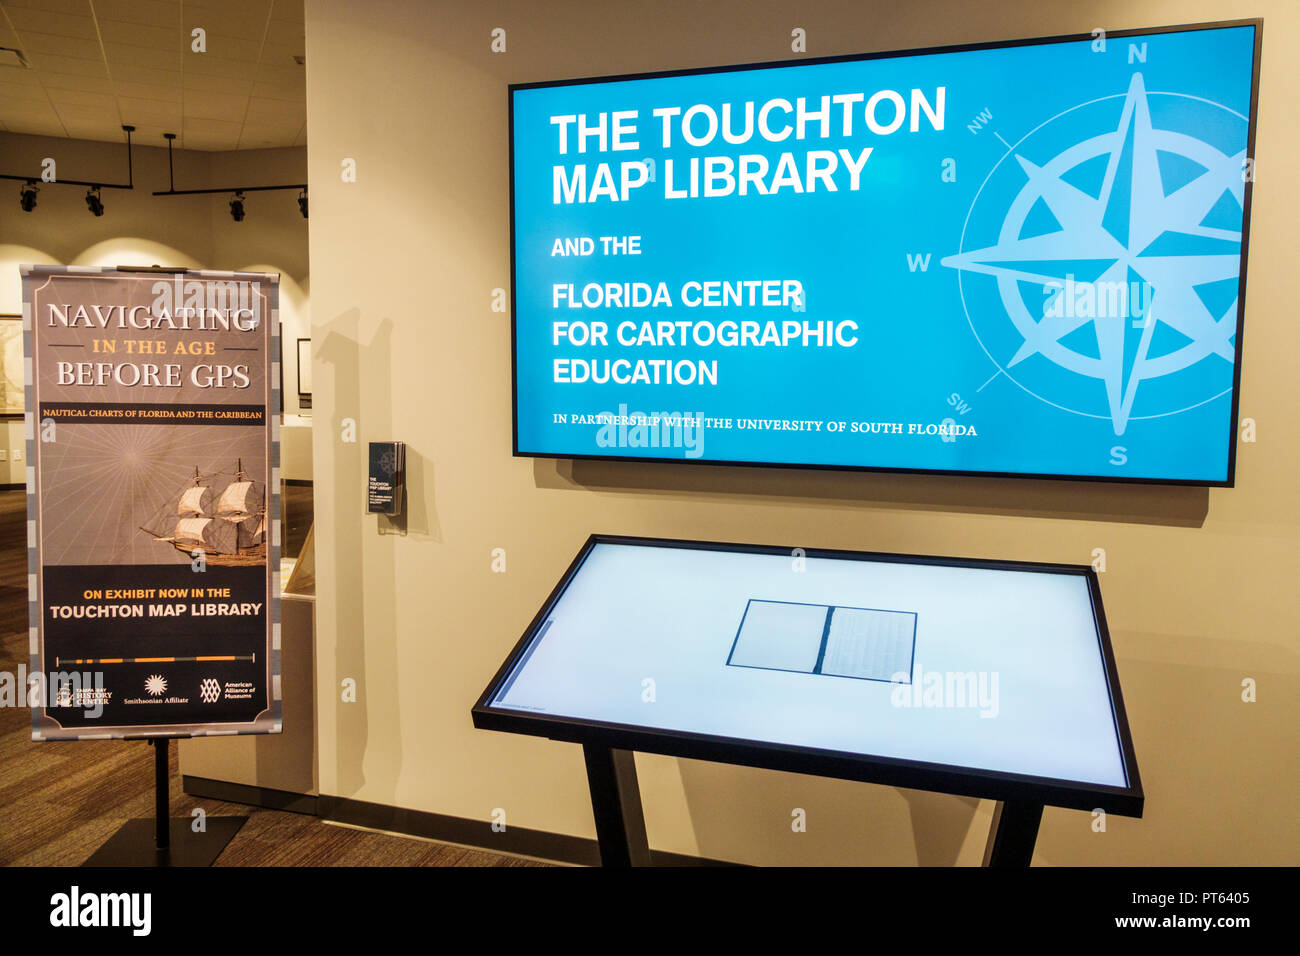 Tampa Florida Tampa Bay History Center centre inside collection exhibits map library cartographic education - Stock Image